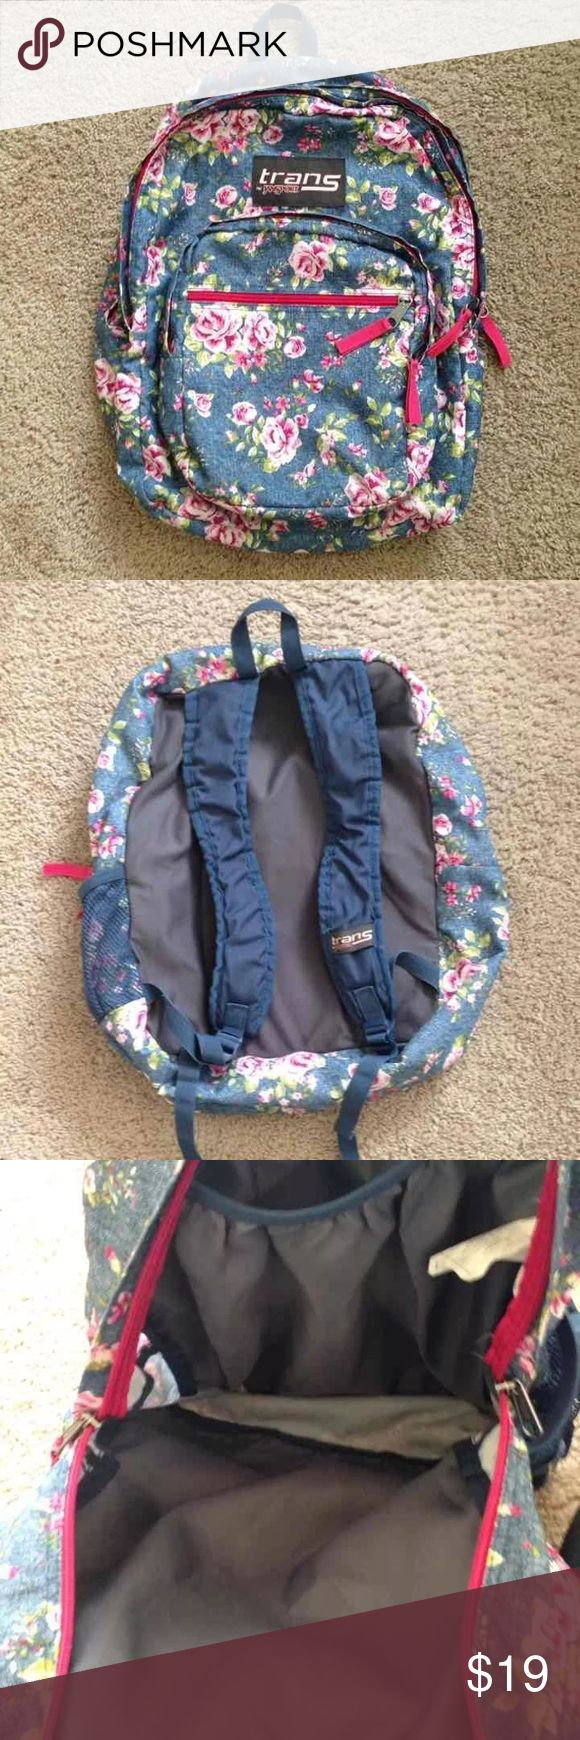 Floral Jansport Backpack Stylish and durable! Good condition. The straps are a bit scrunched up but will straighten with use. Great if you are a student with a heavy load! Jansport Bags Backpacks